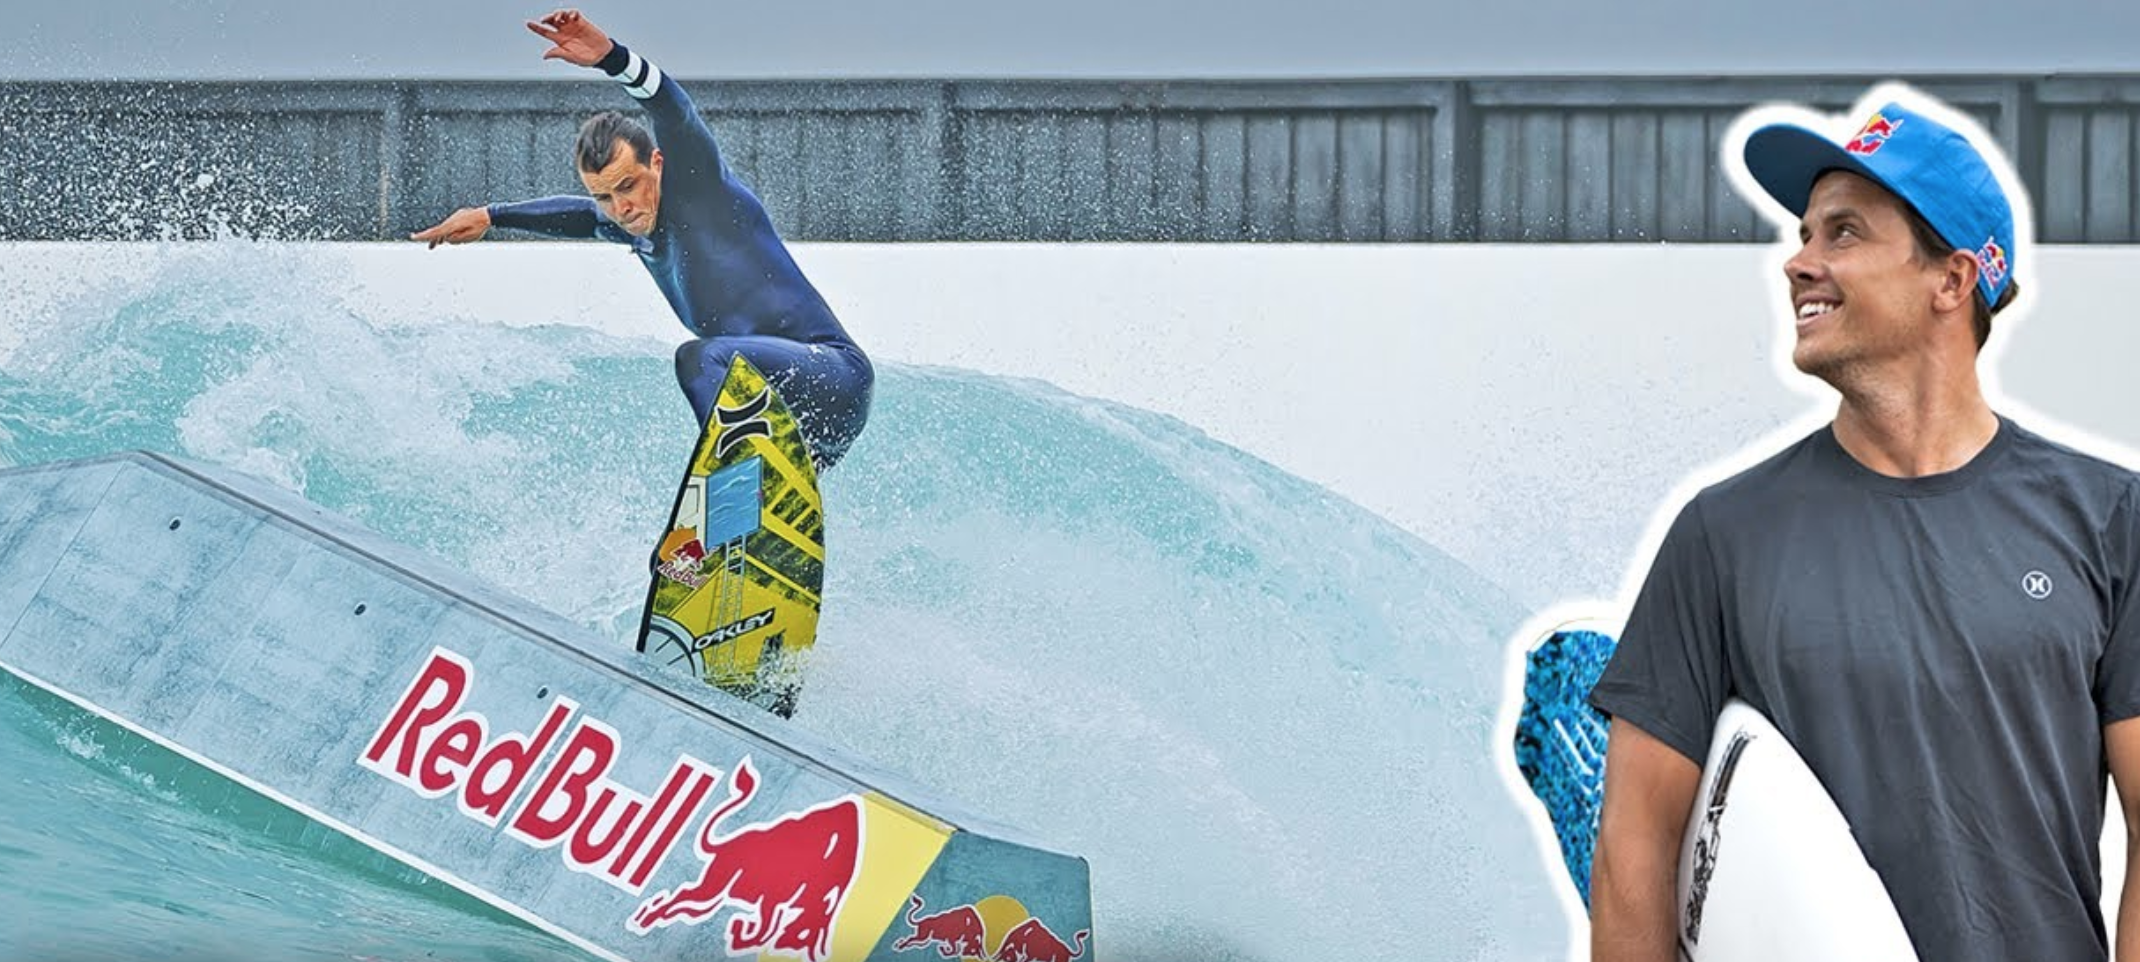 Julian Wilson Mixes Surfing & Skateboarding In This Vid From Red Bull